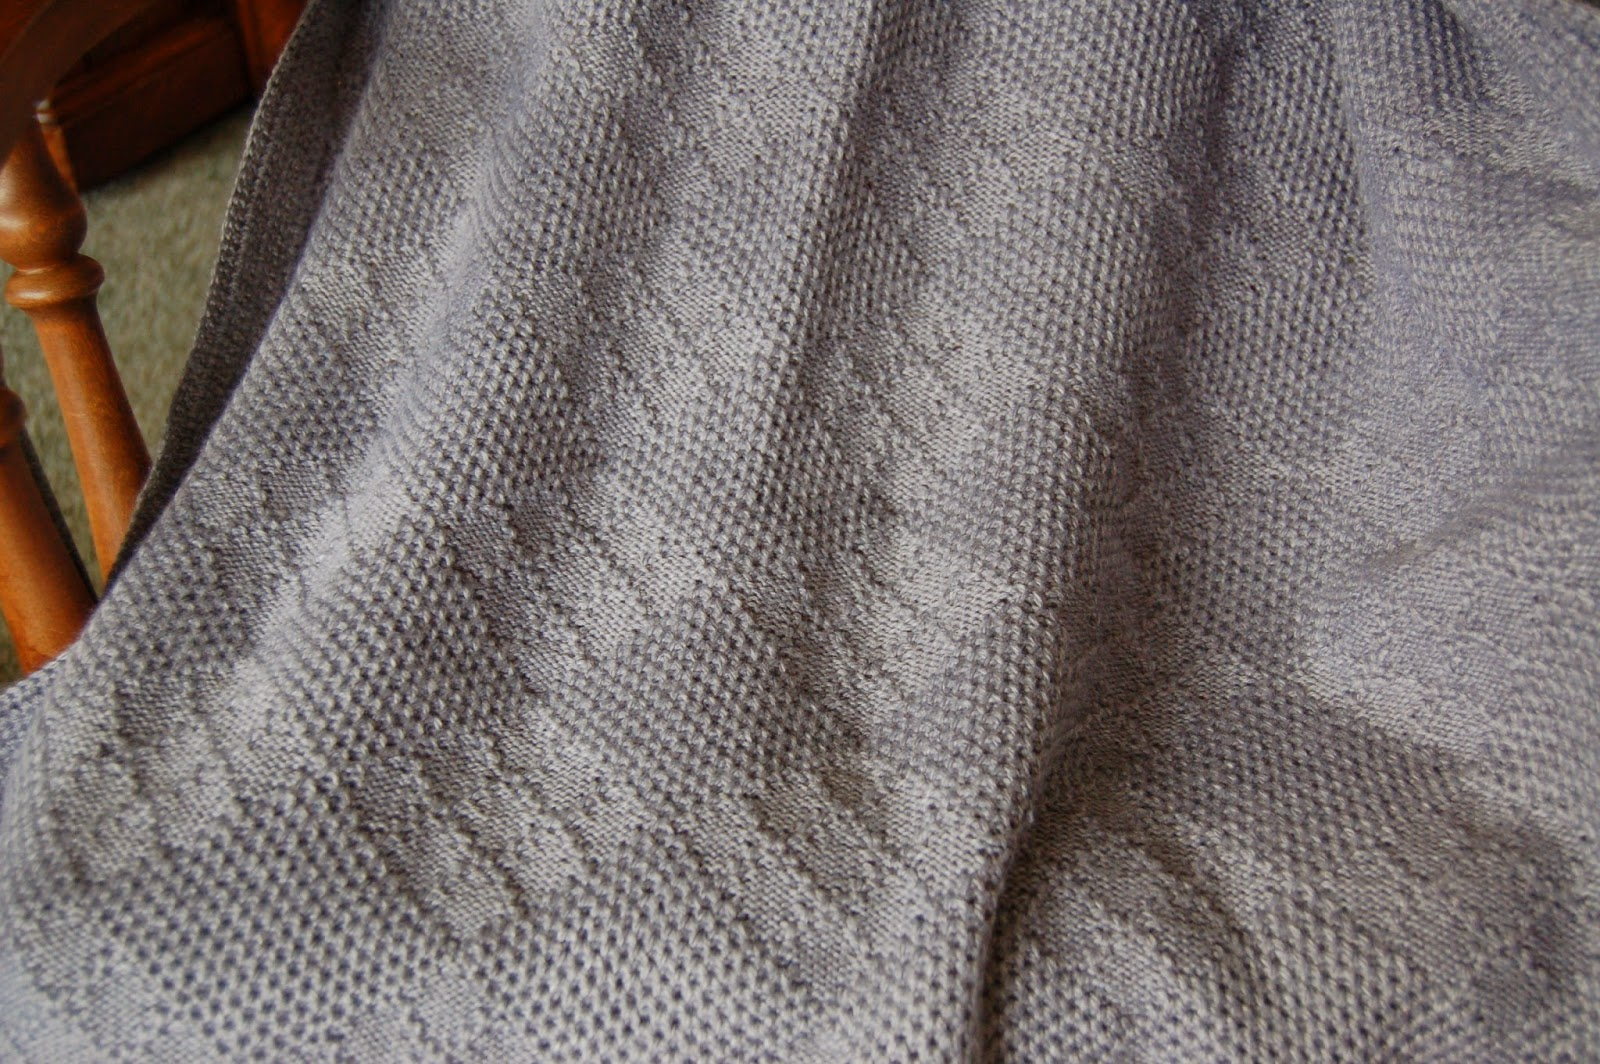 Dolly creates tuck stitch afghan knitting machine knit 3 rows set carriage for pattern knitting knit 773 rows set carriage back to regular knitting knit 3 rows bind off using a size 5 crochet hook bankloansurffo Images